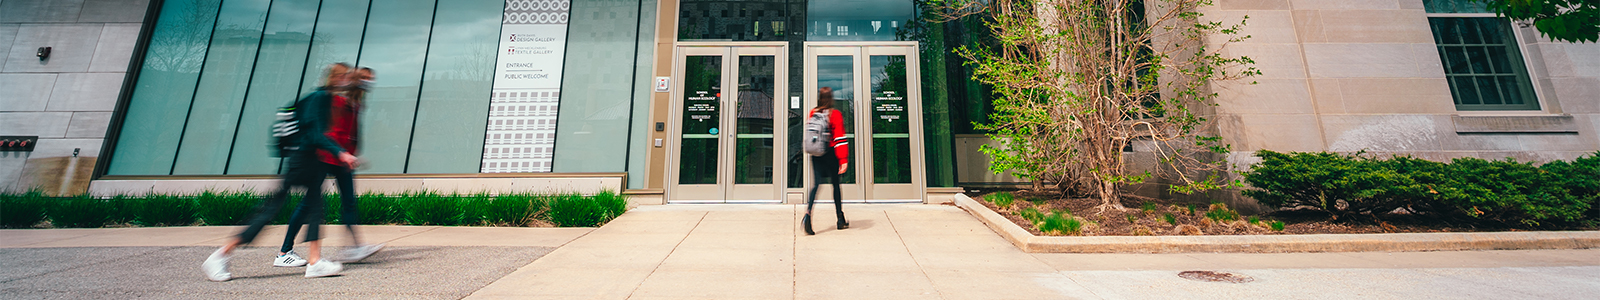 3 students wearing masks, walk through the front doors of Nancy Nicholas Hall.